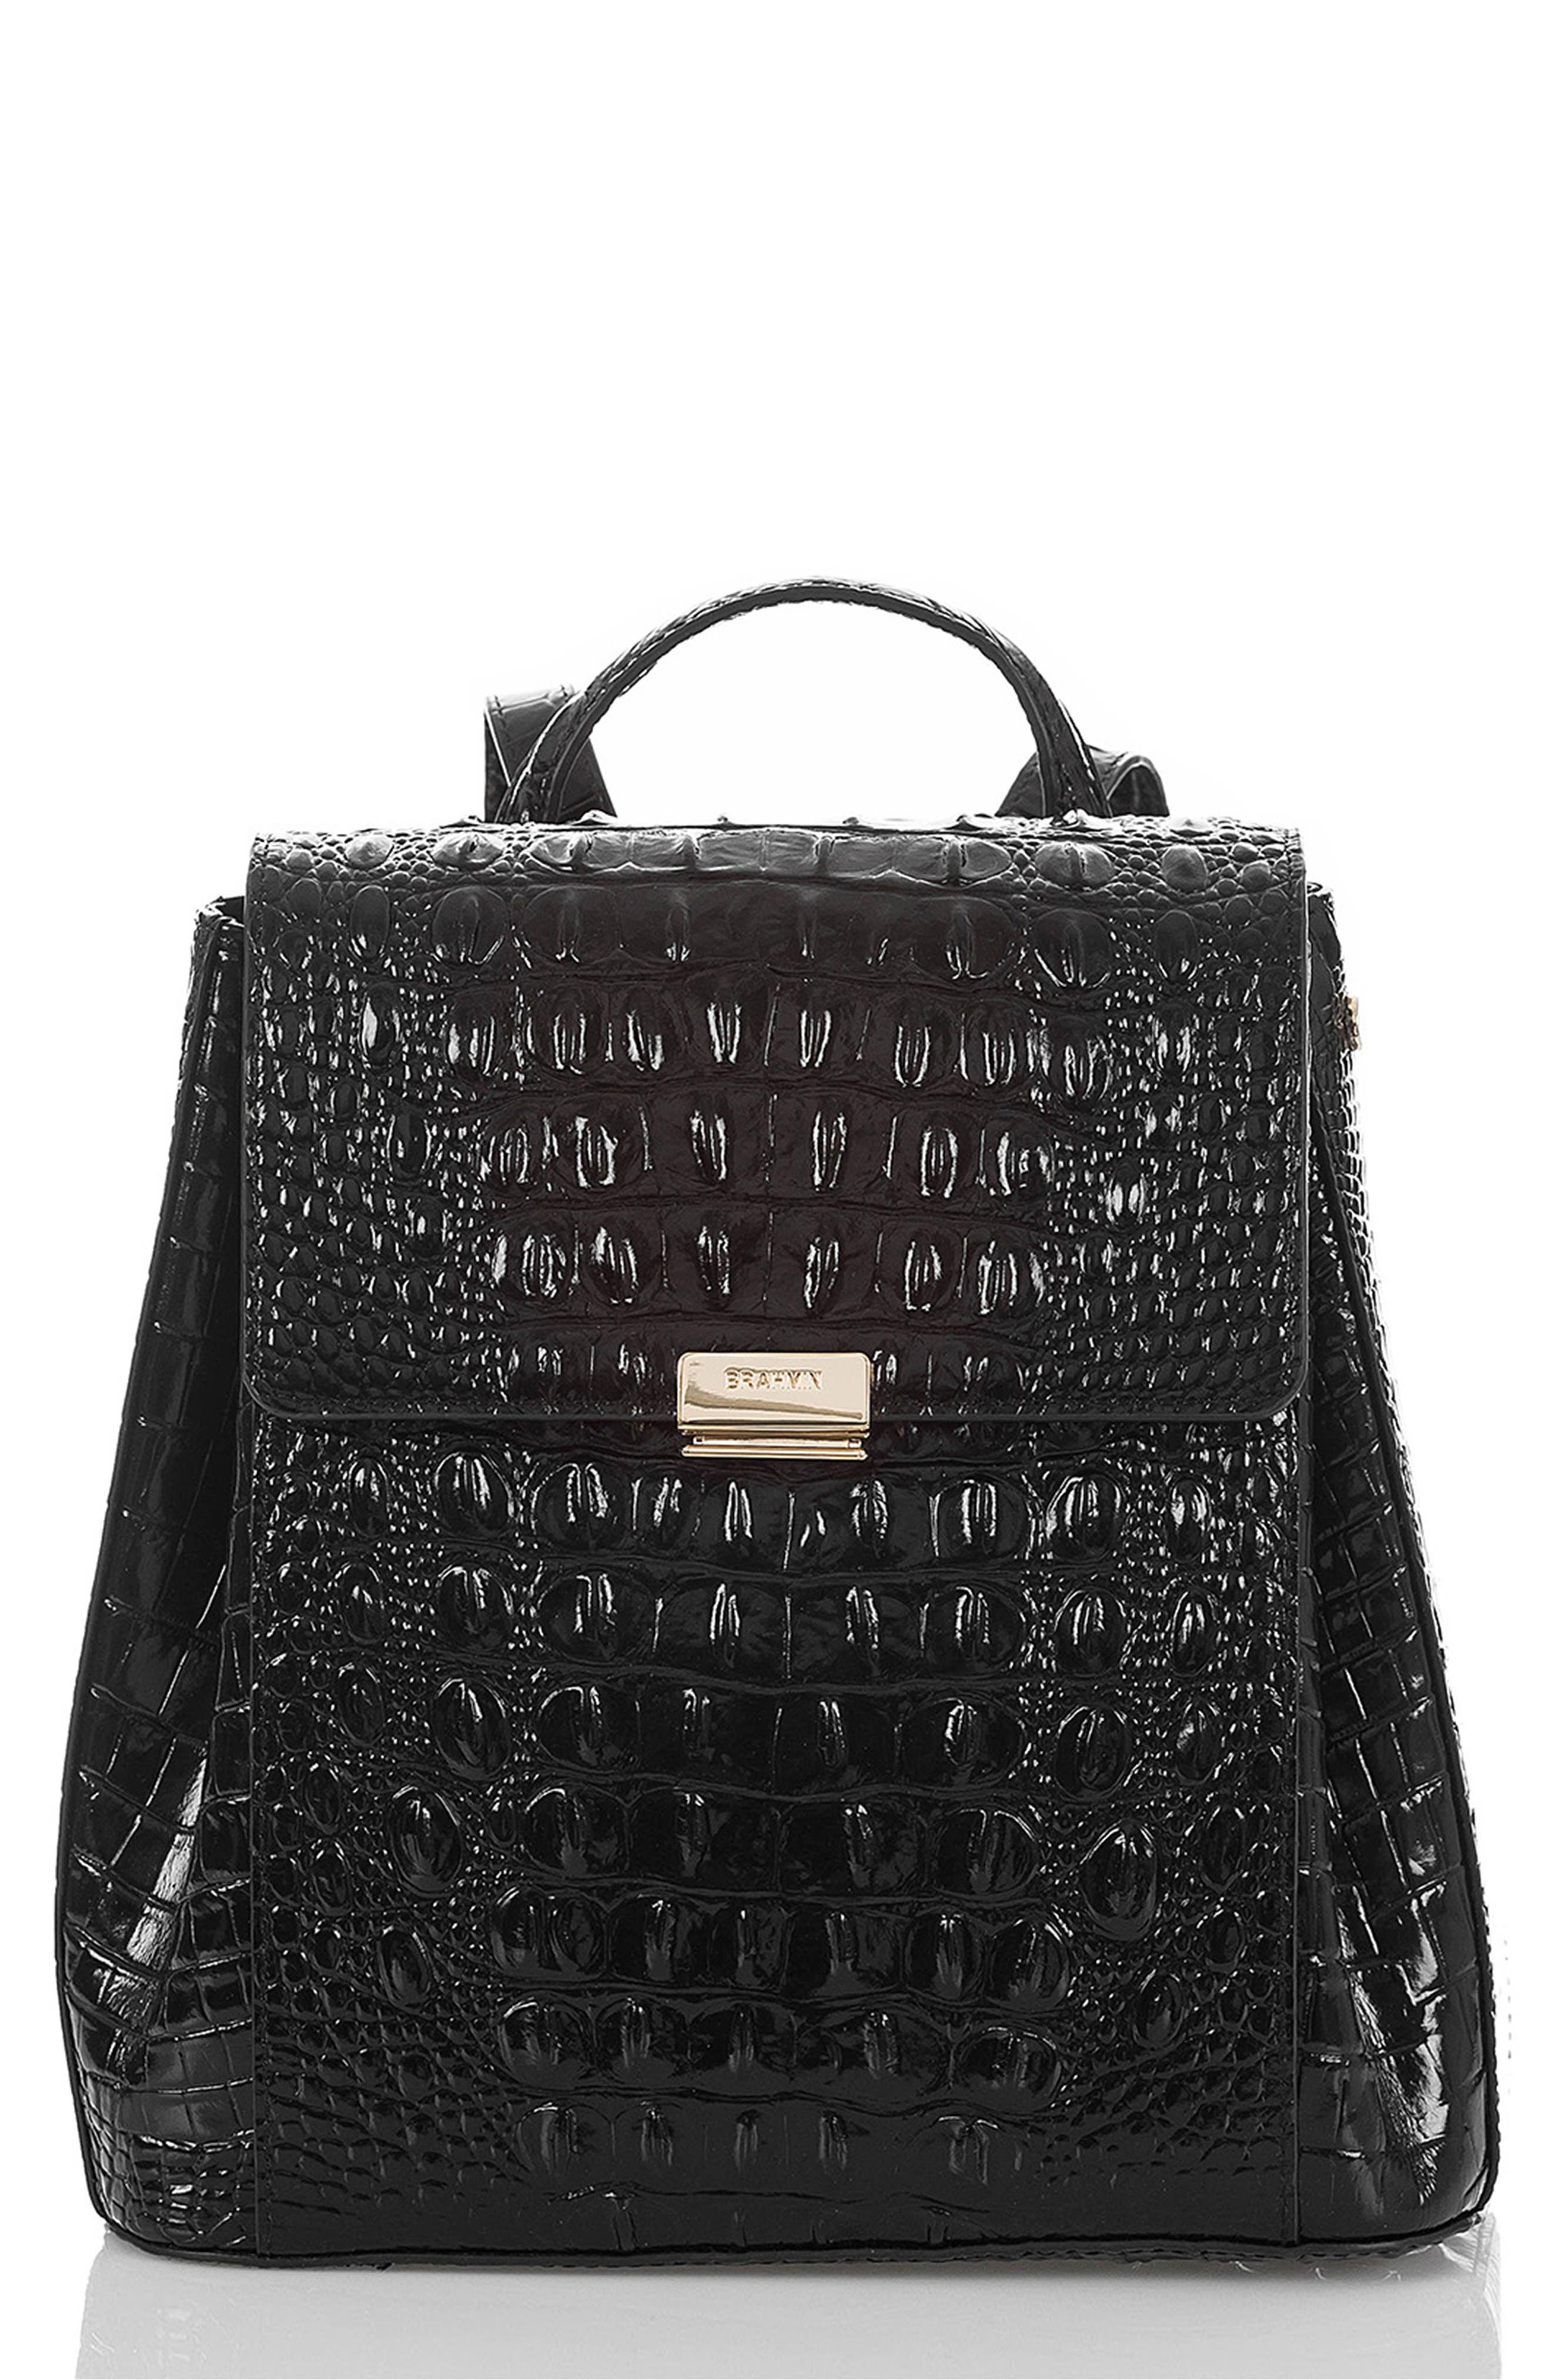 BRAHMIN, Margo Croc Embossed Leather Backpack, Main thumbnail 1, color, BLACK MELBOURNE